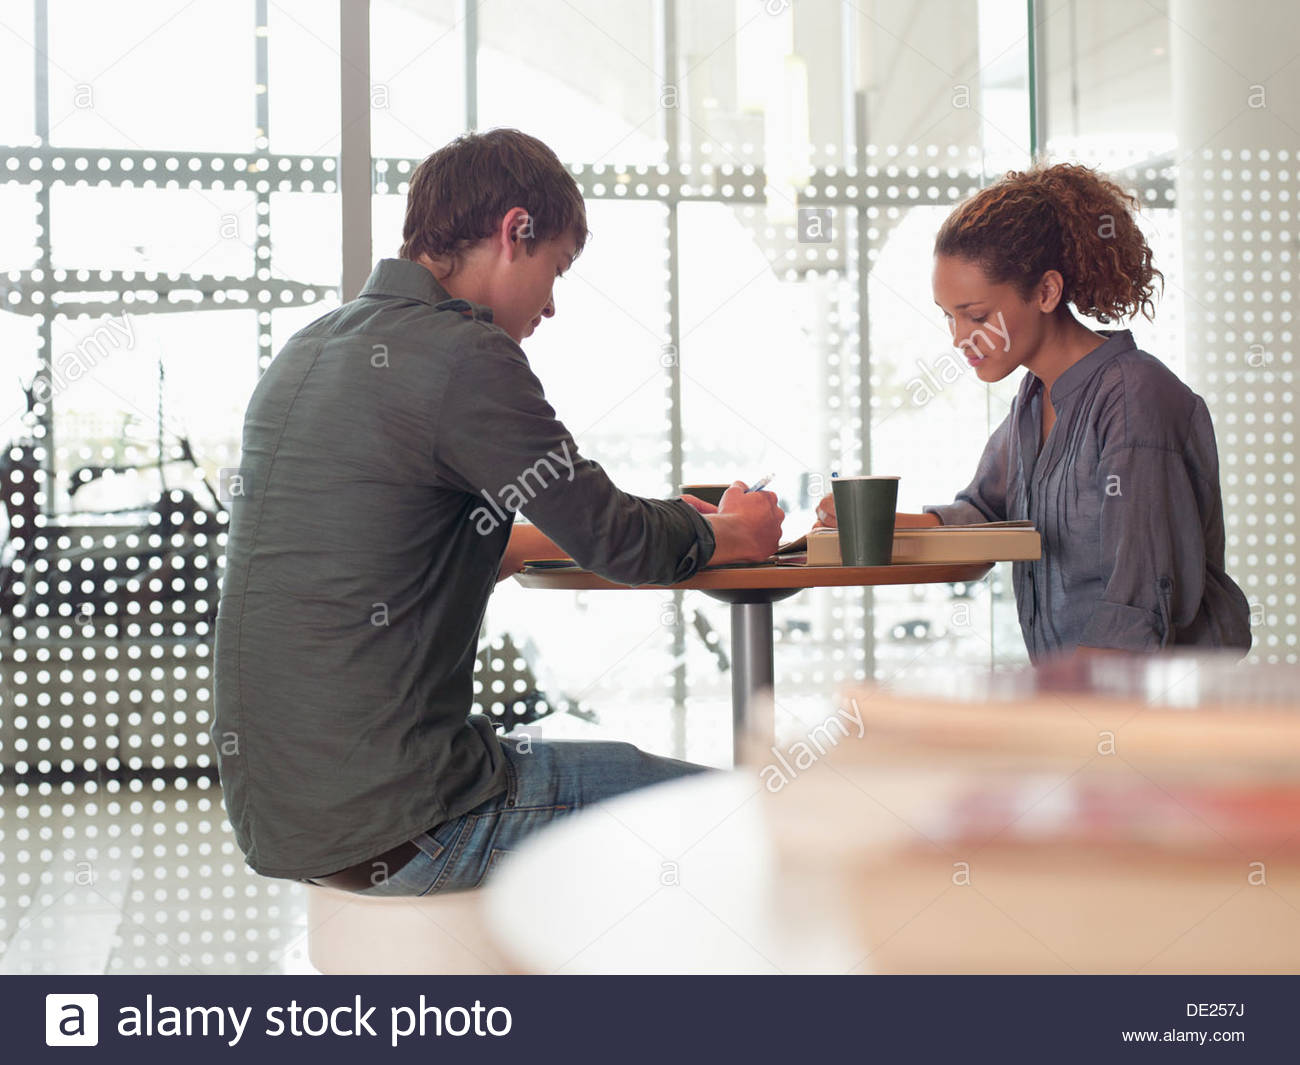 Smiling couple sitting at table in college cafeteria - Stock Image